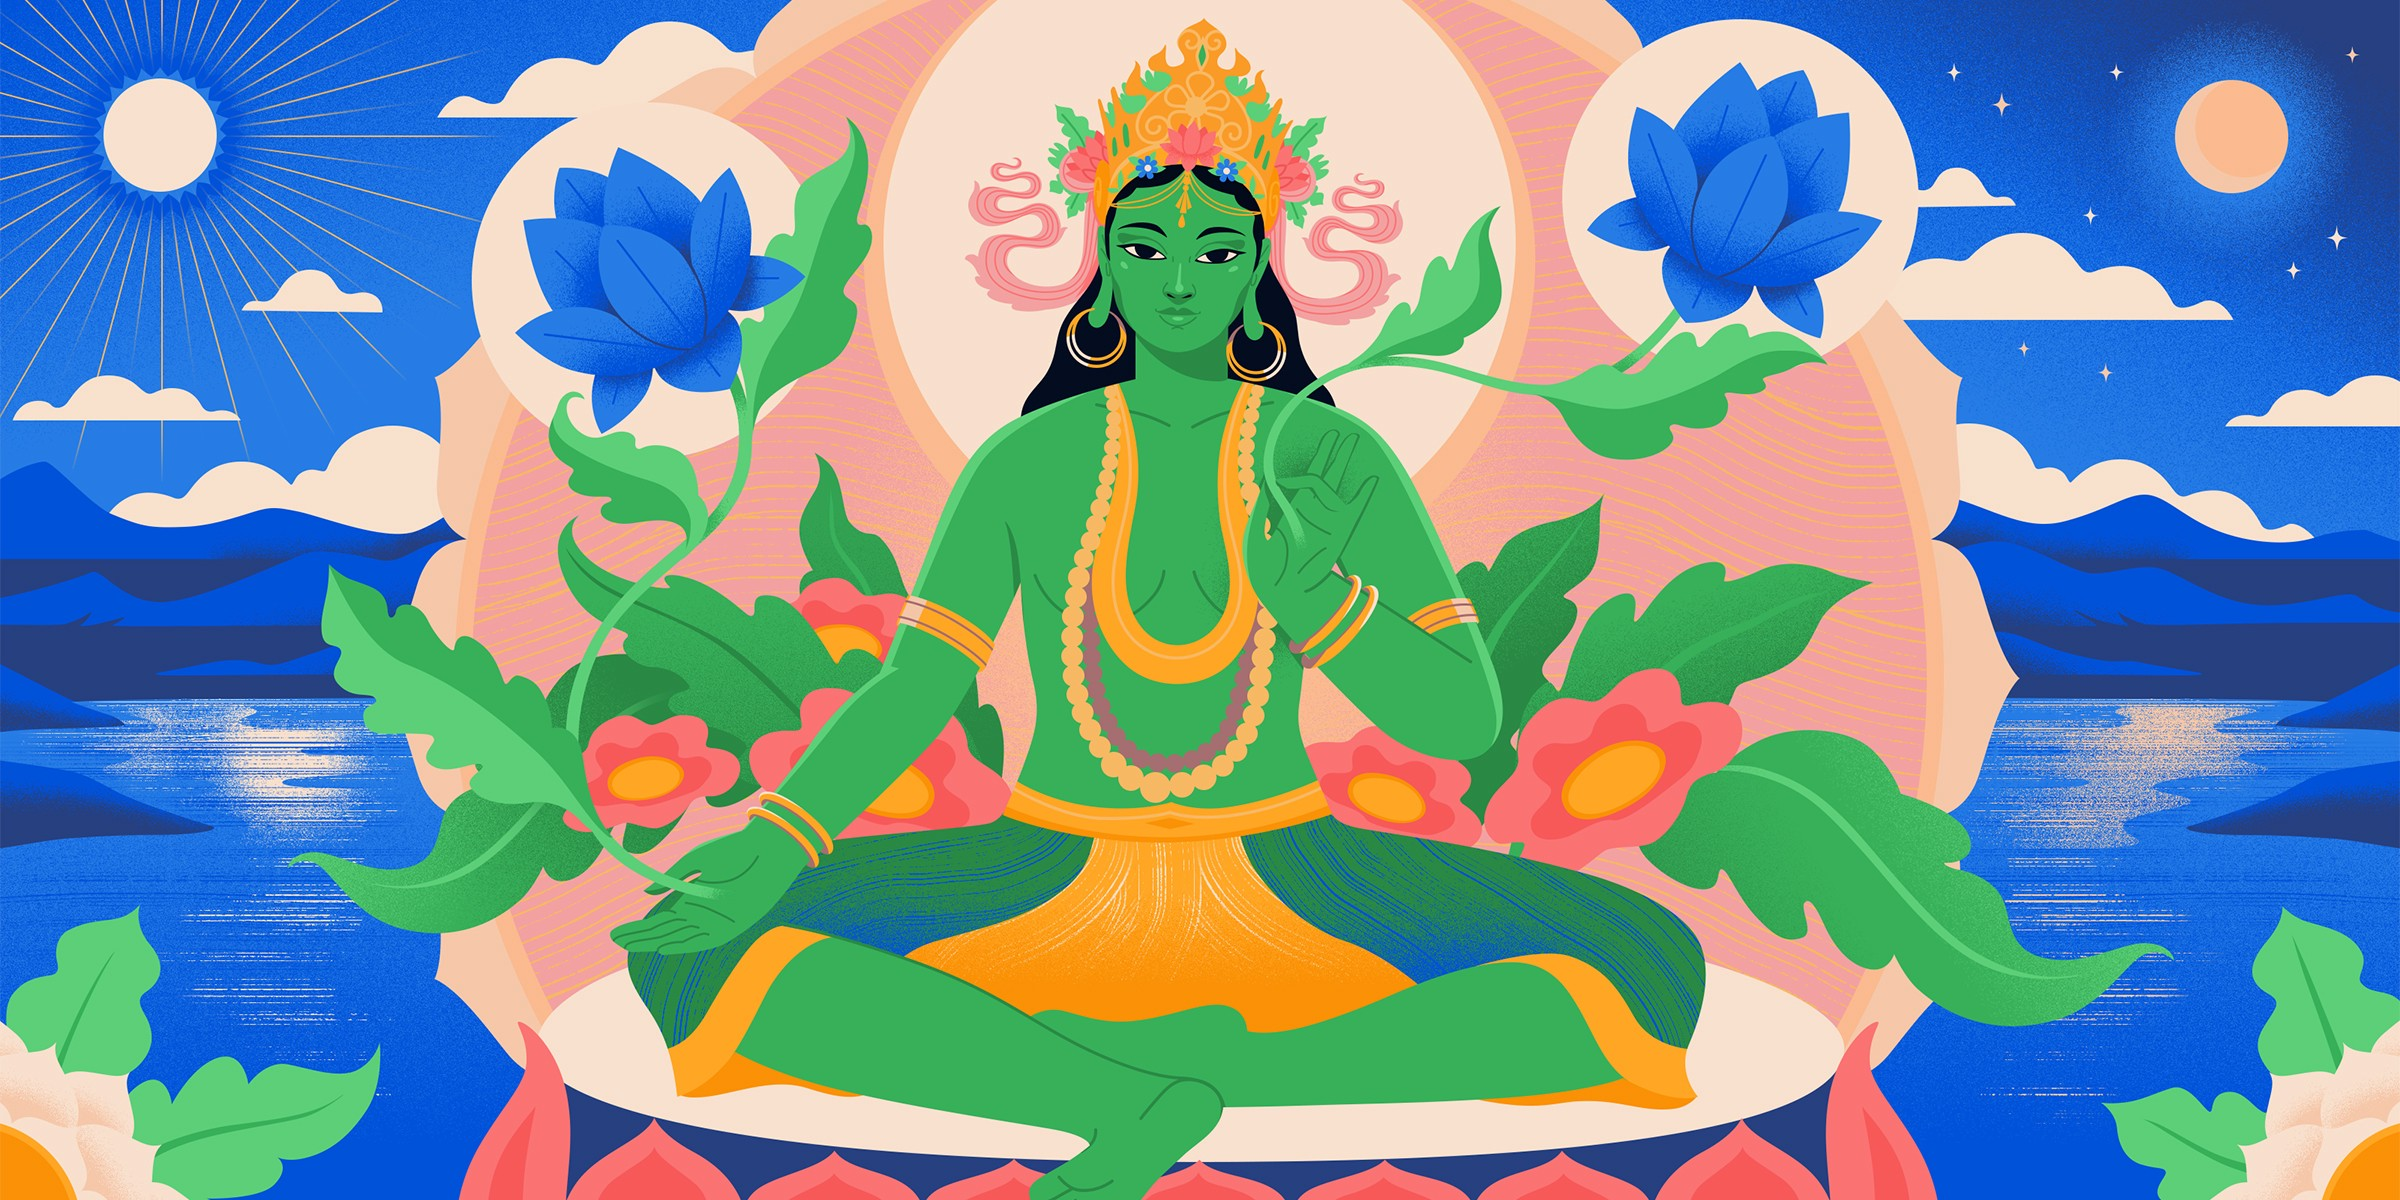 A Goddess for Fostering Kindness and Compassion